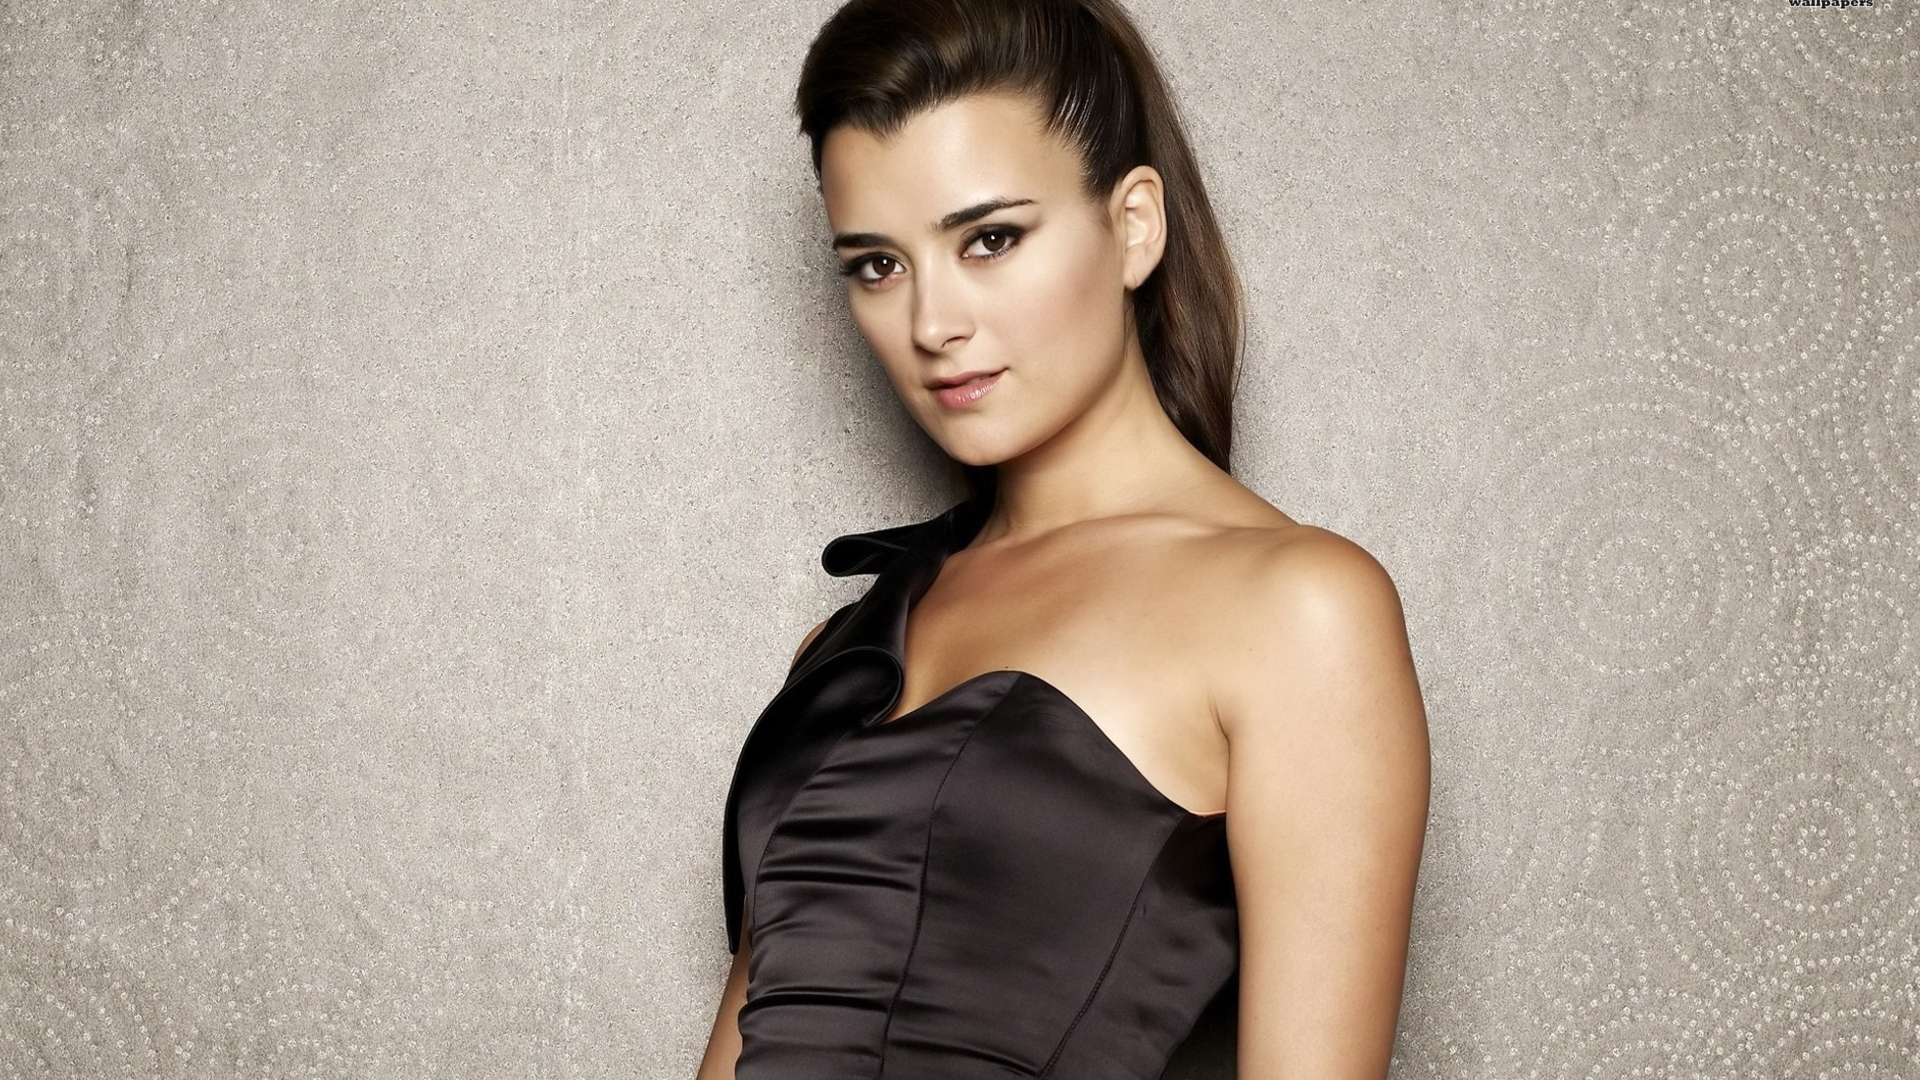 Free Download Cote De Pablo Ncis Leaving Wallpaper 1920x1200 For